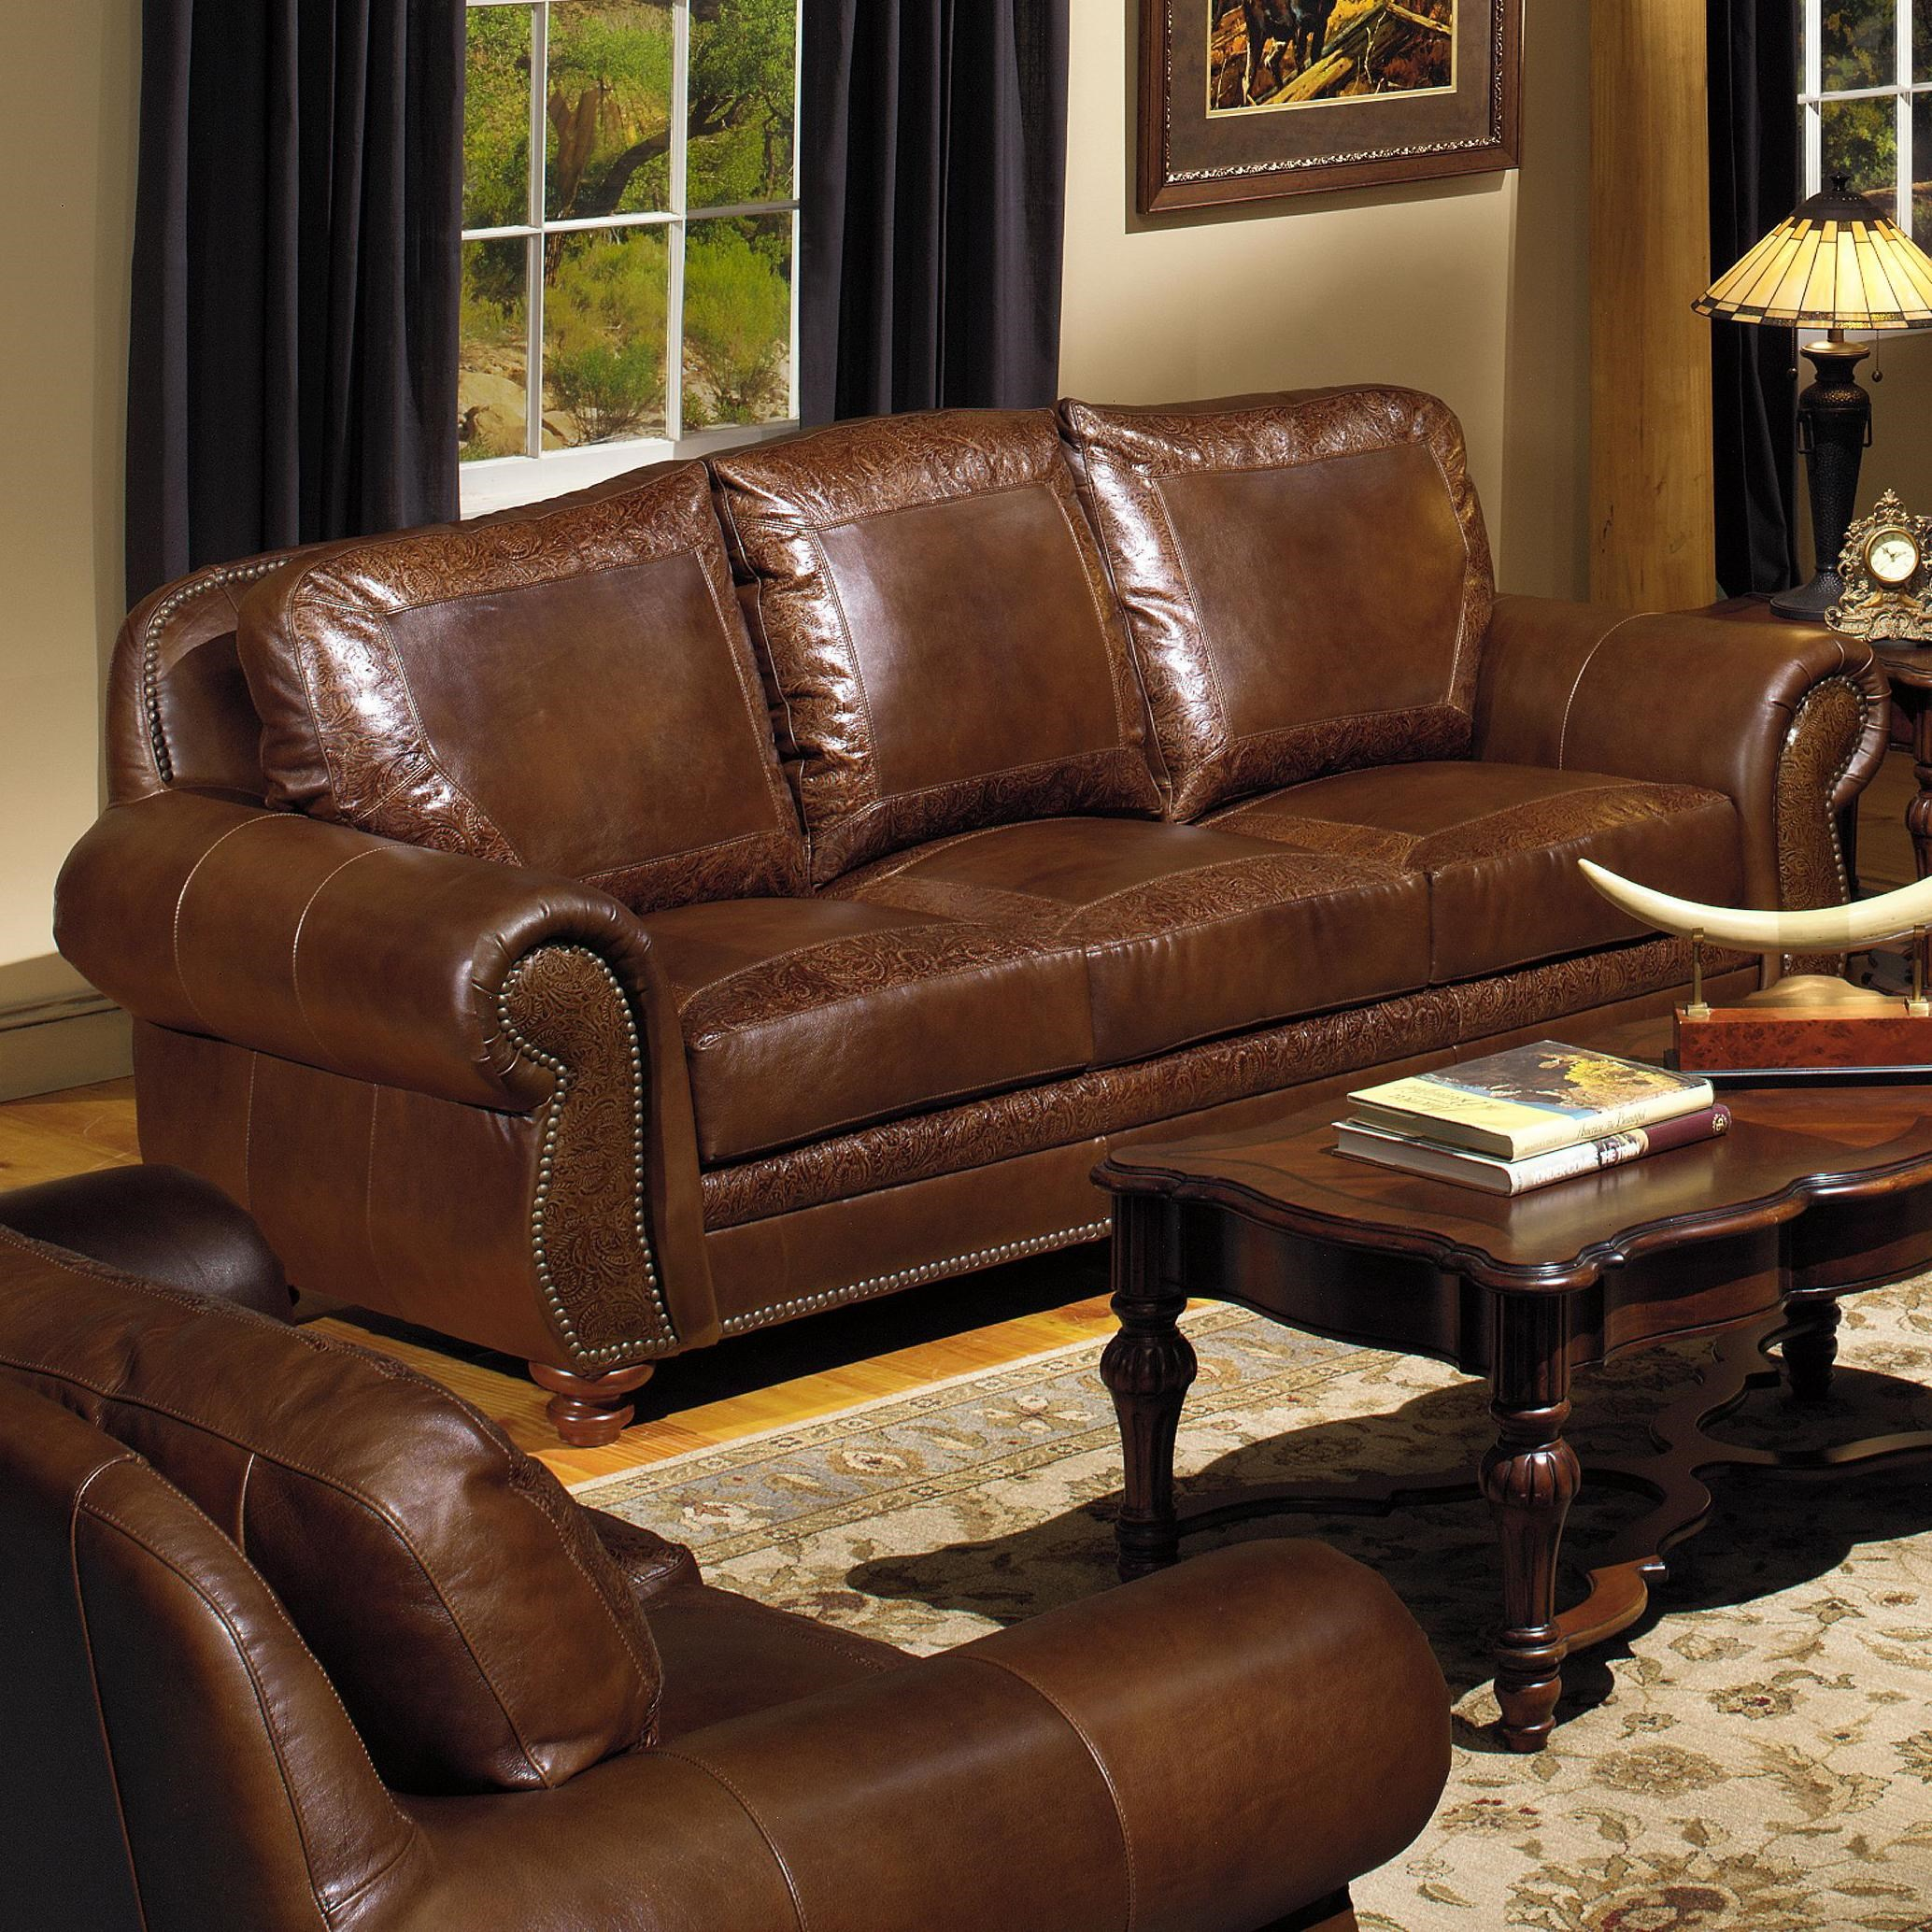 usa premium leather 8555 traditional leather sofa with nailhead trim rh olindes com traditional leather sofas uk traditional leather sofas and chairs